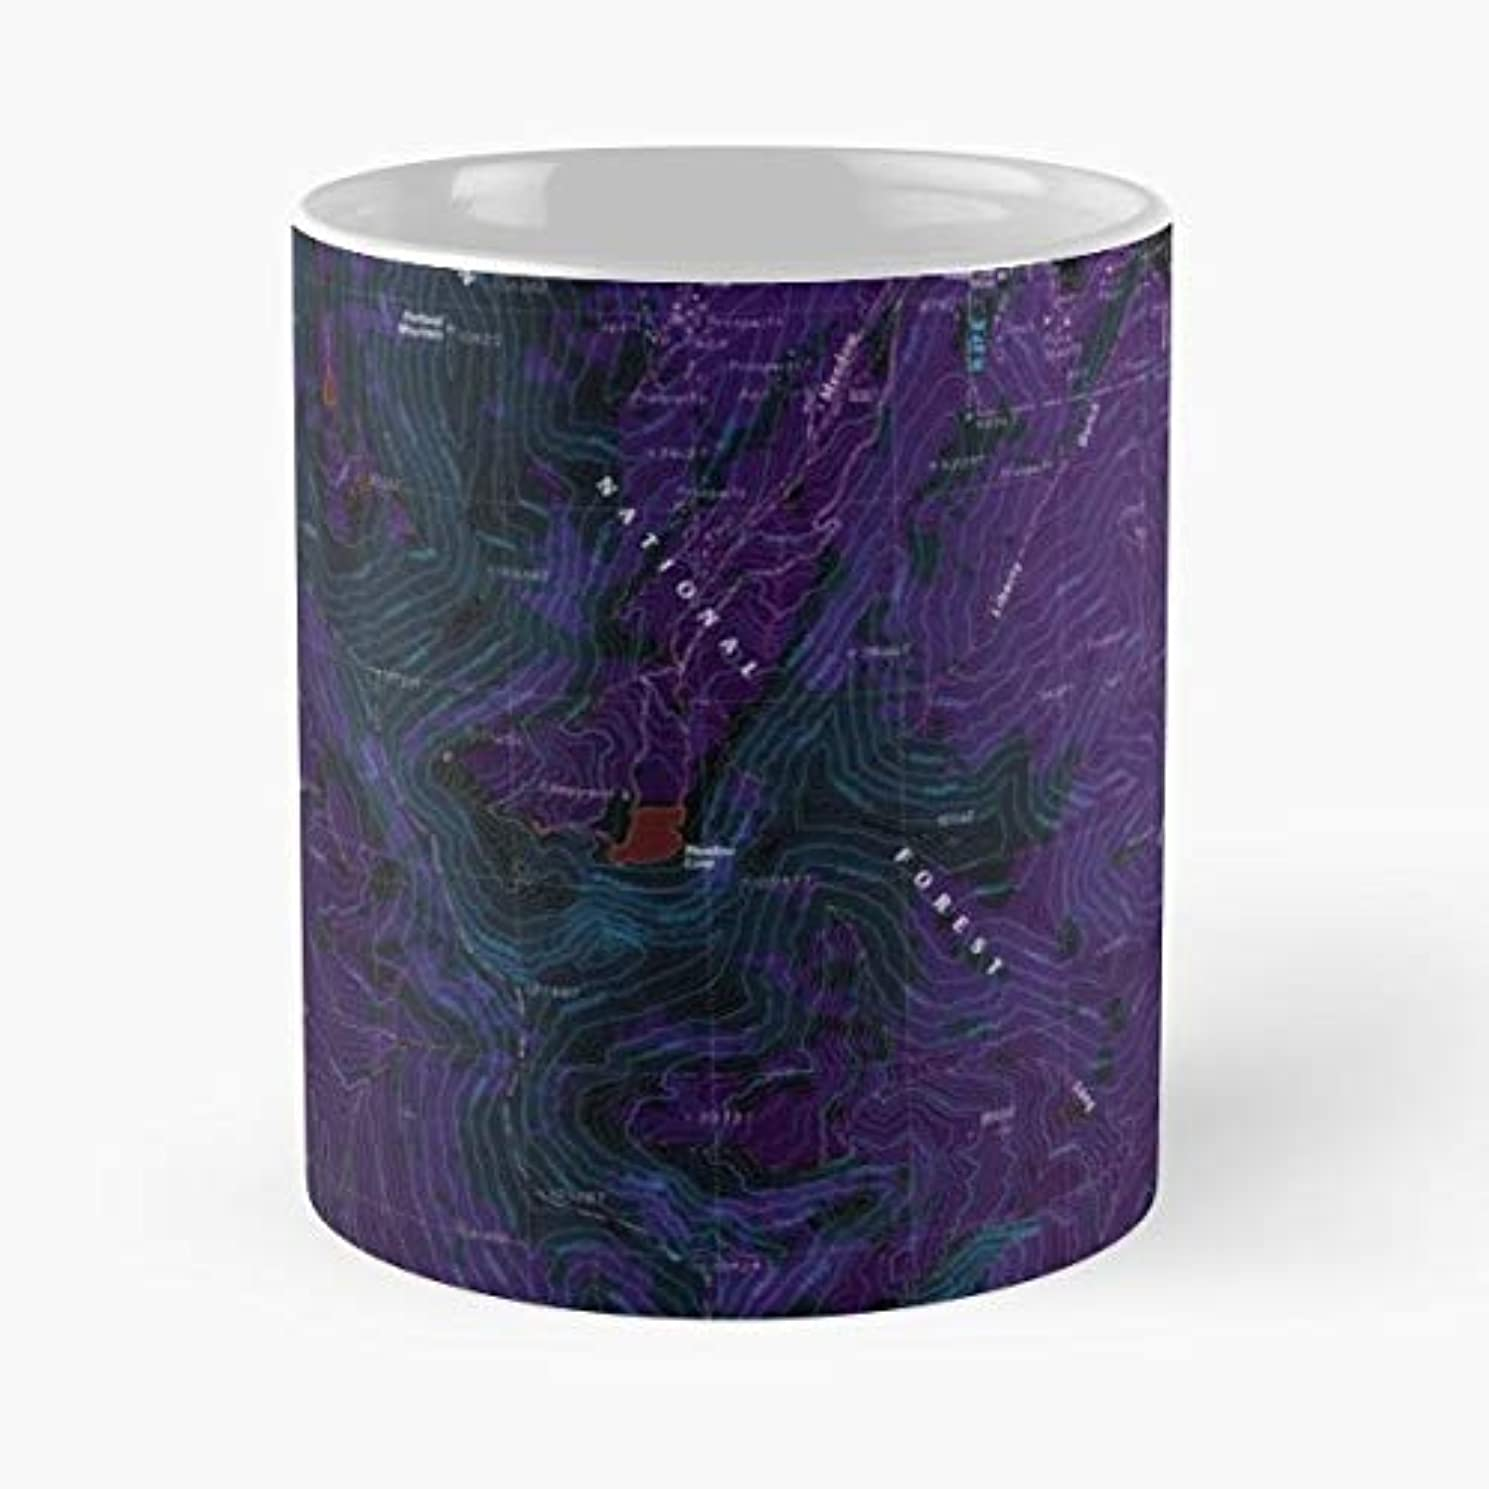 Usgs Topo Map Idaho - Funny Gifts For Men And Women Gift Coffee Mug Tea Cup White 11 Oz The Best Gift Holidays.